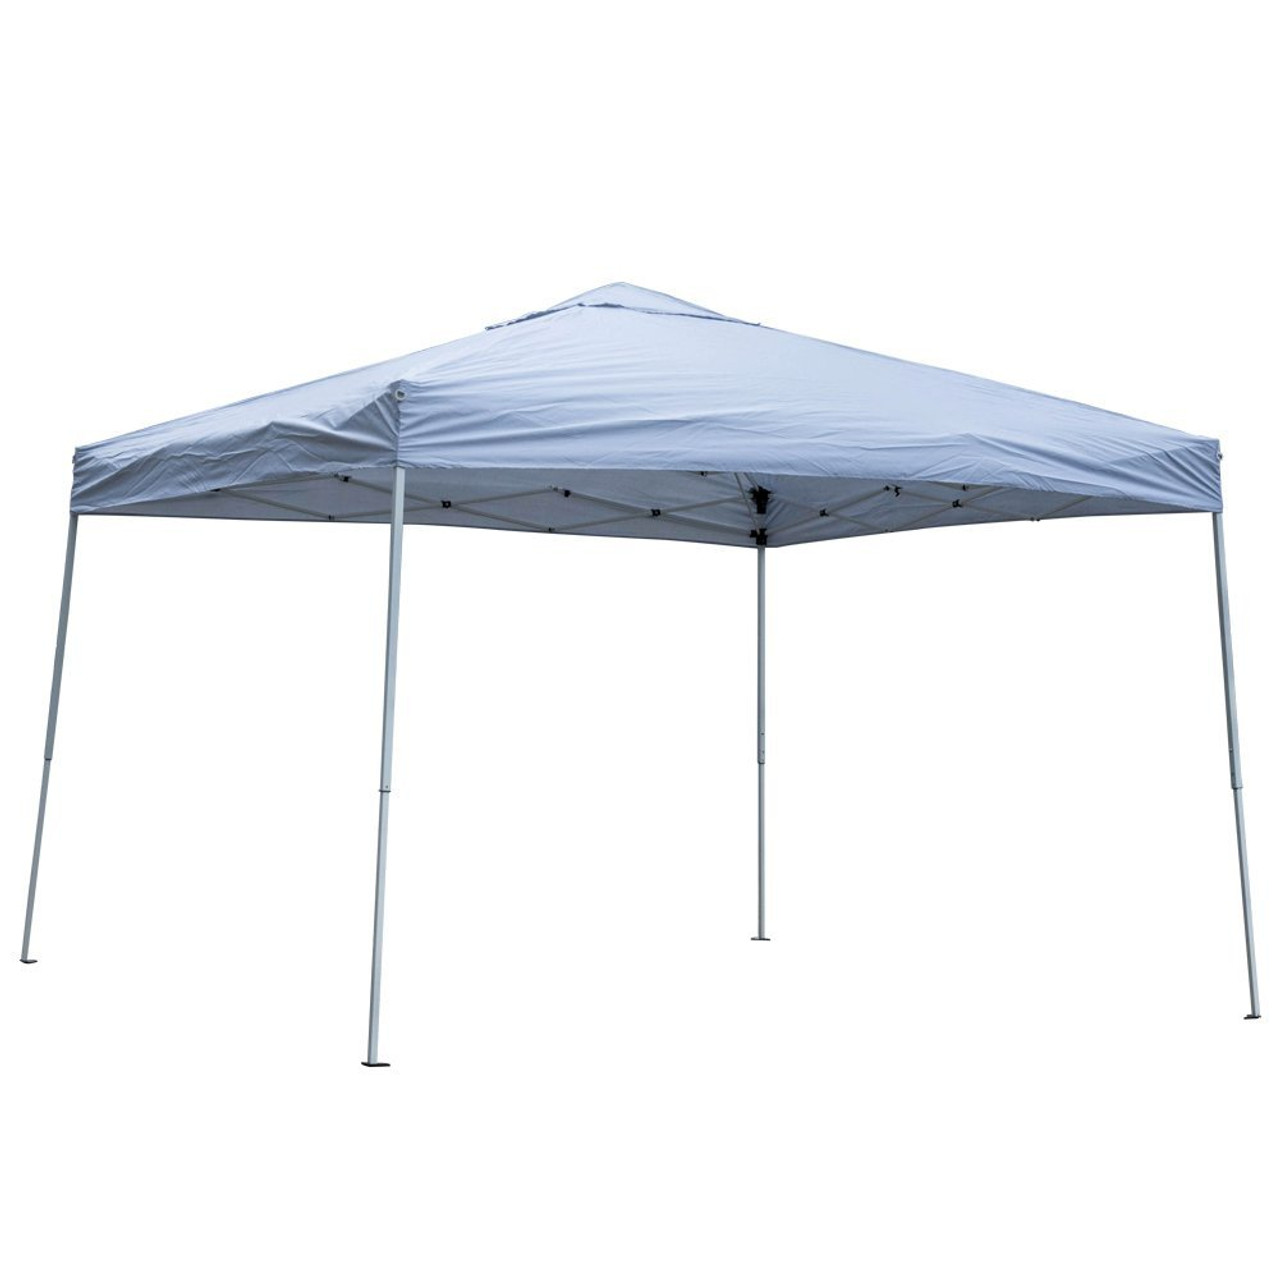 sheds and canopy p outdoors outdoor home depot en categories structures premium white canada tents the portable awning